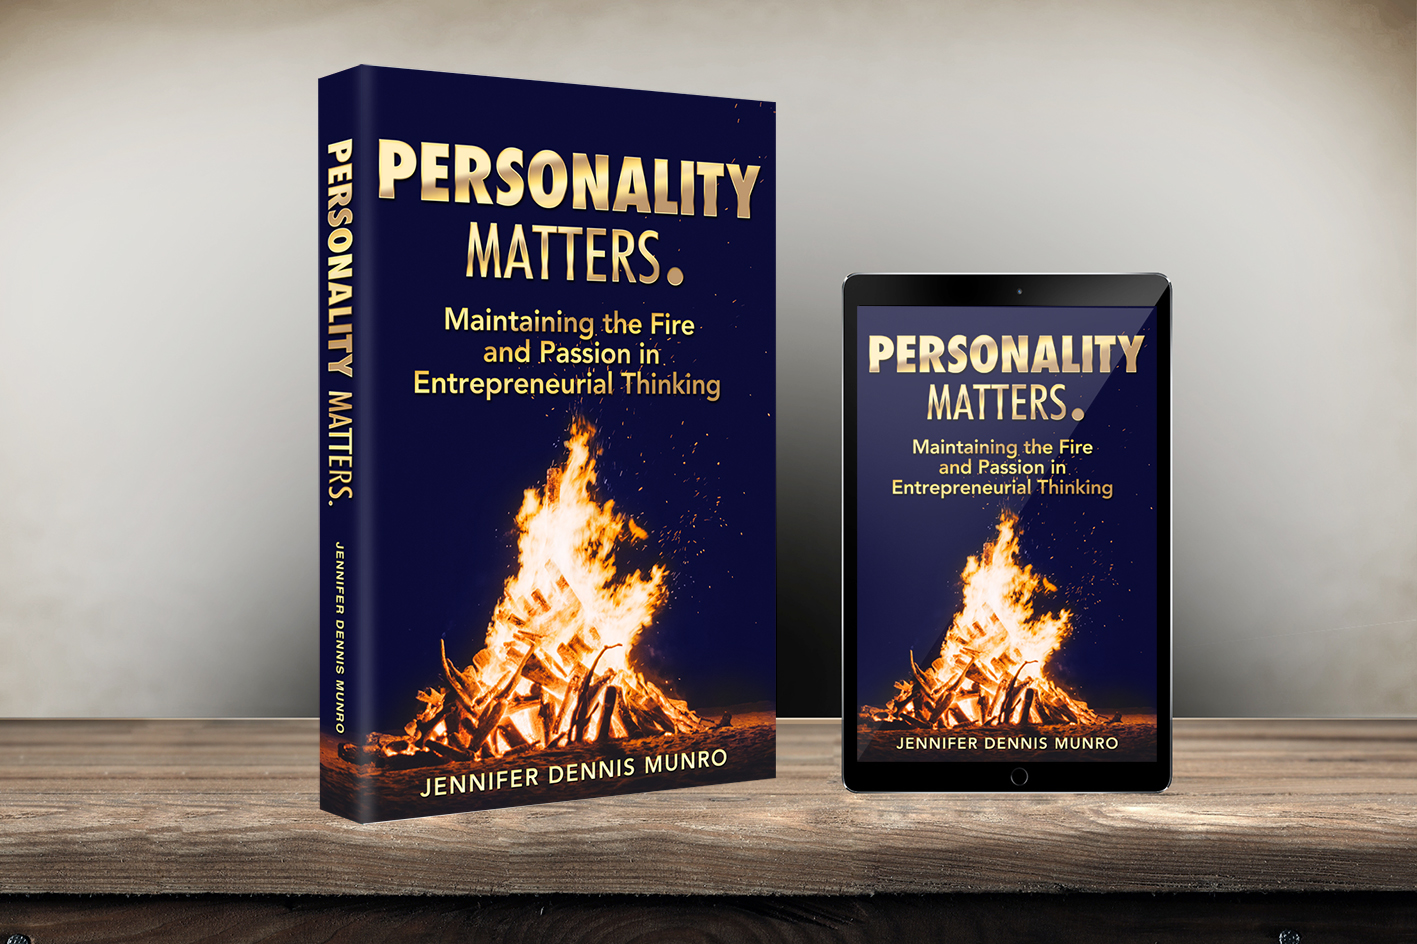 Jennifer Munro, Author of Personality Matters